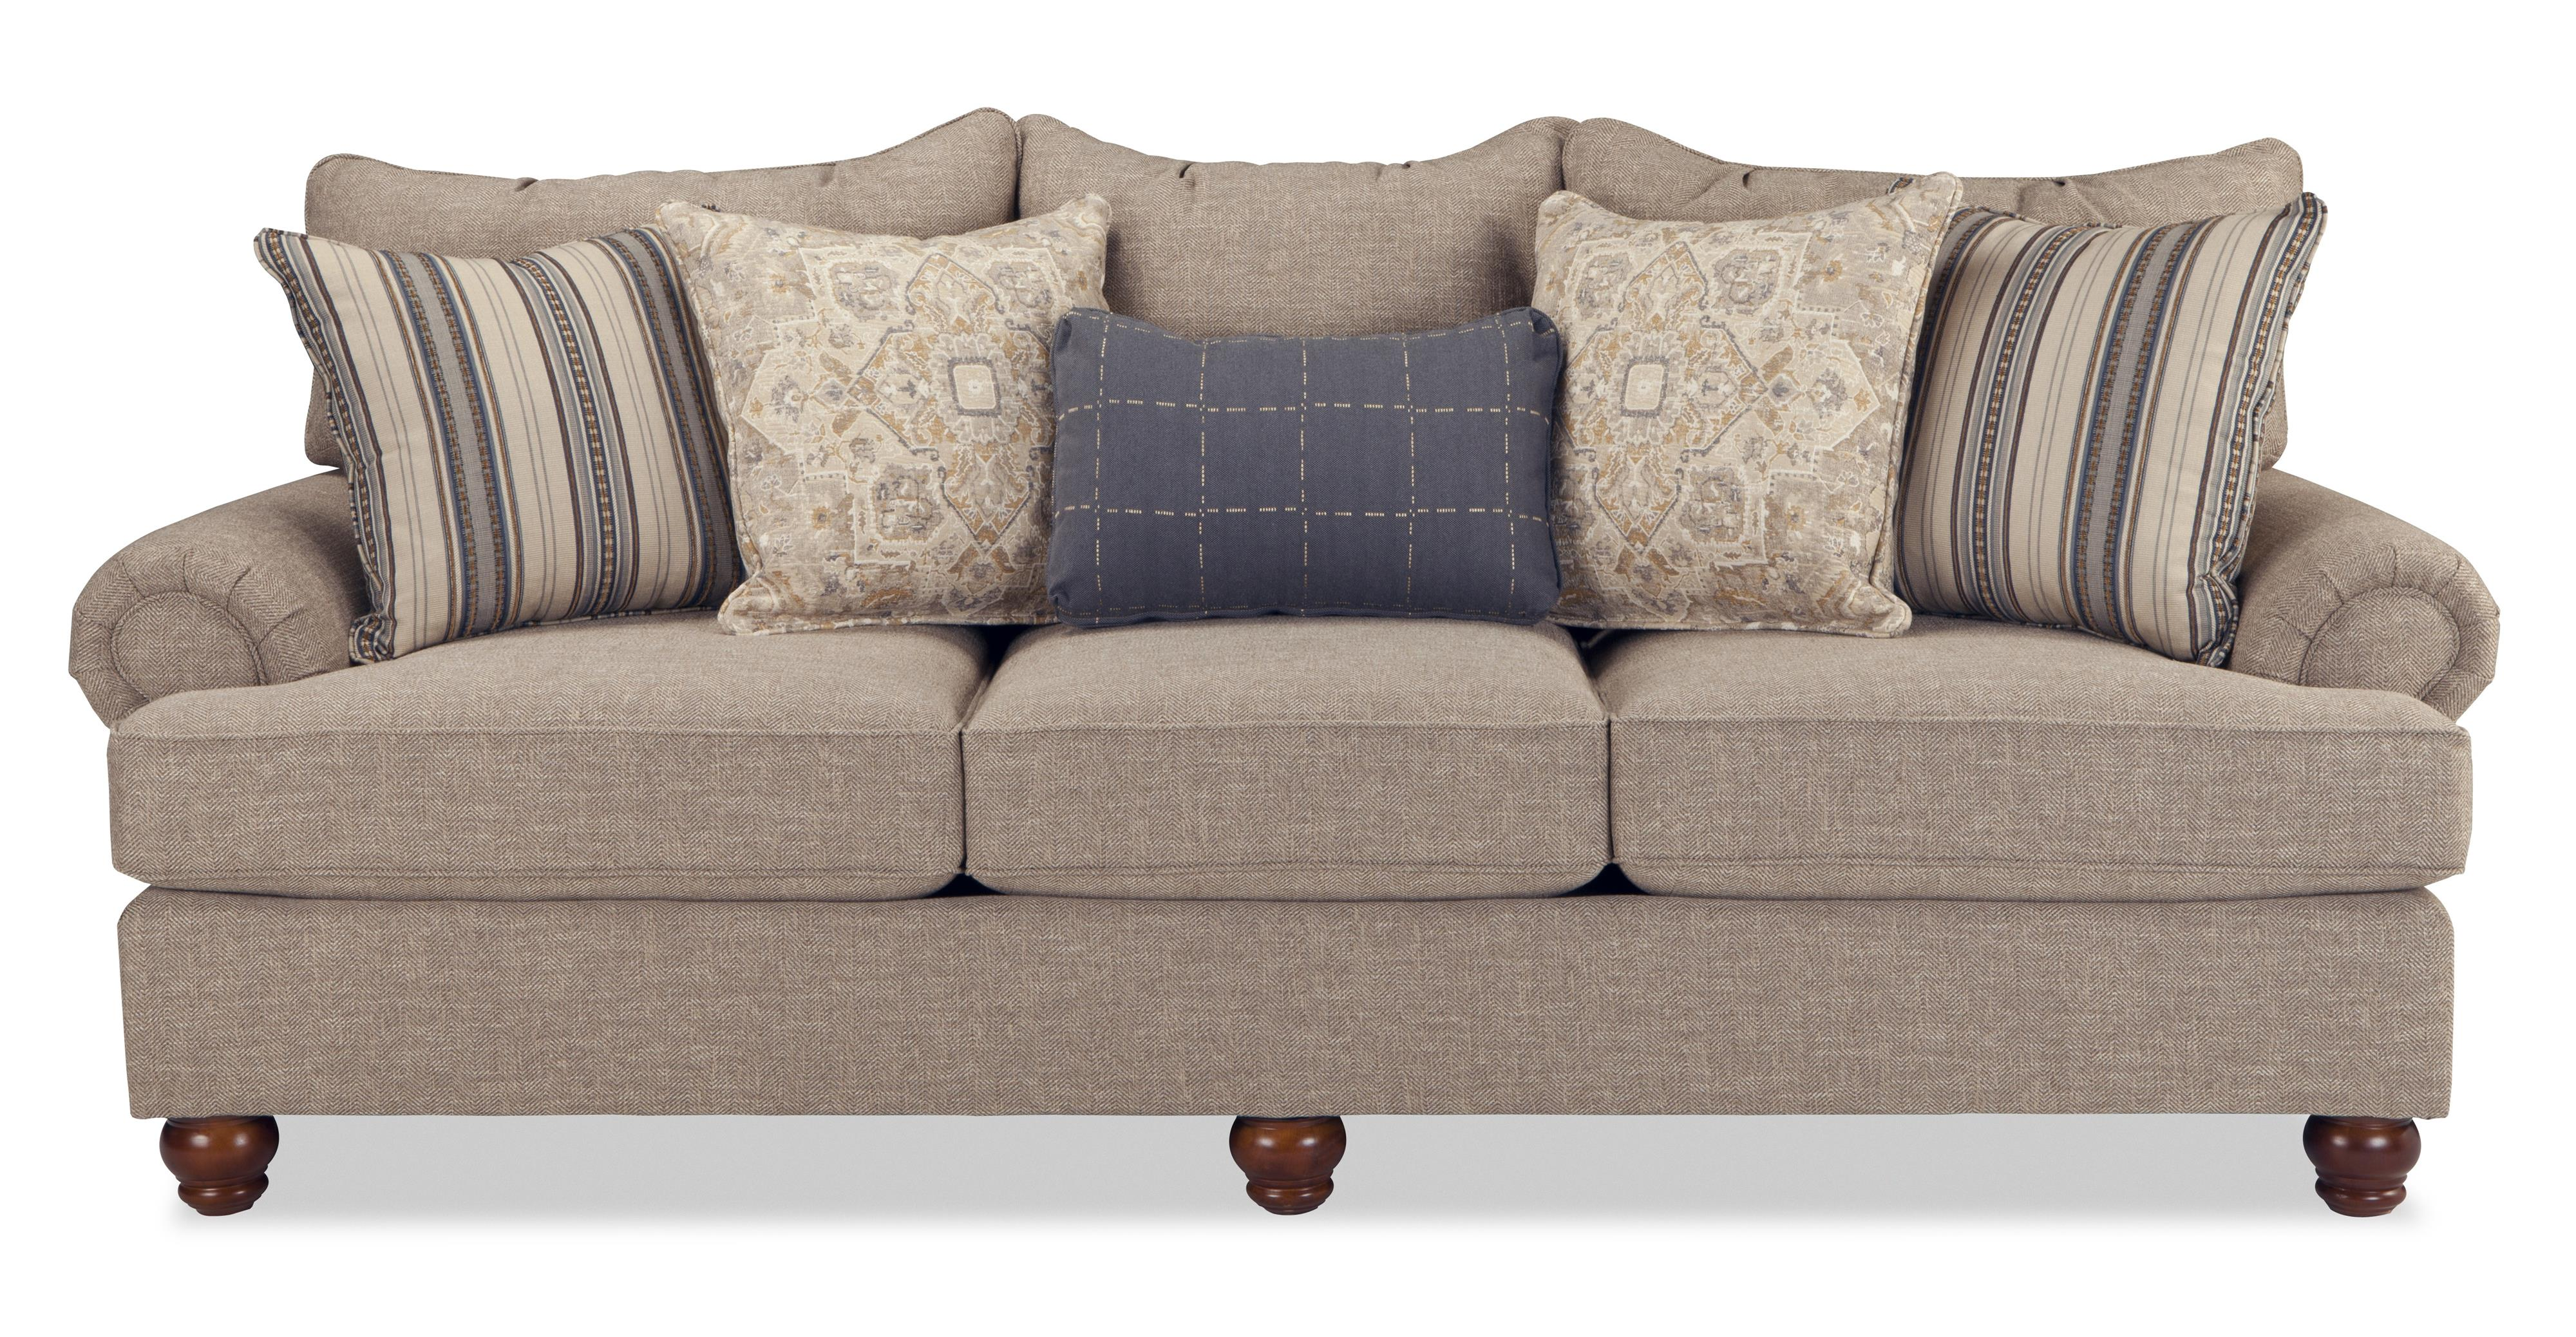 Beau Cozy Life Westgate Sofa   Item Number: 797050PC TOLLIVER 10